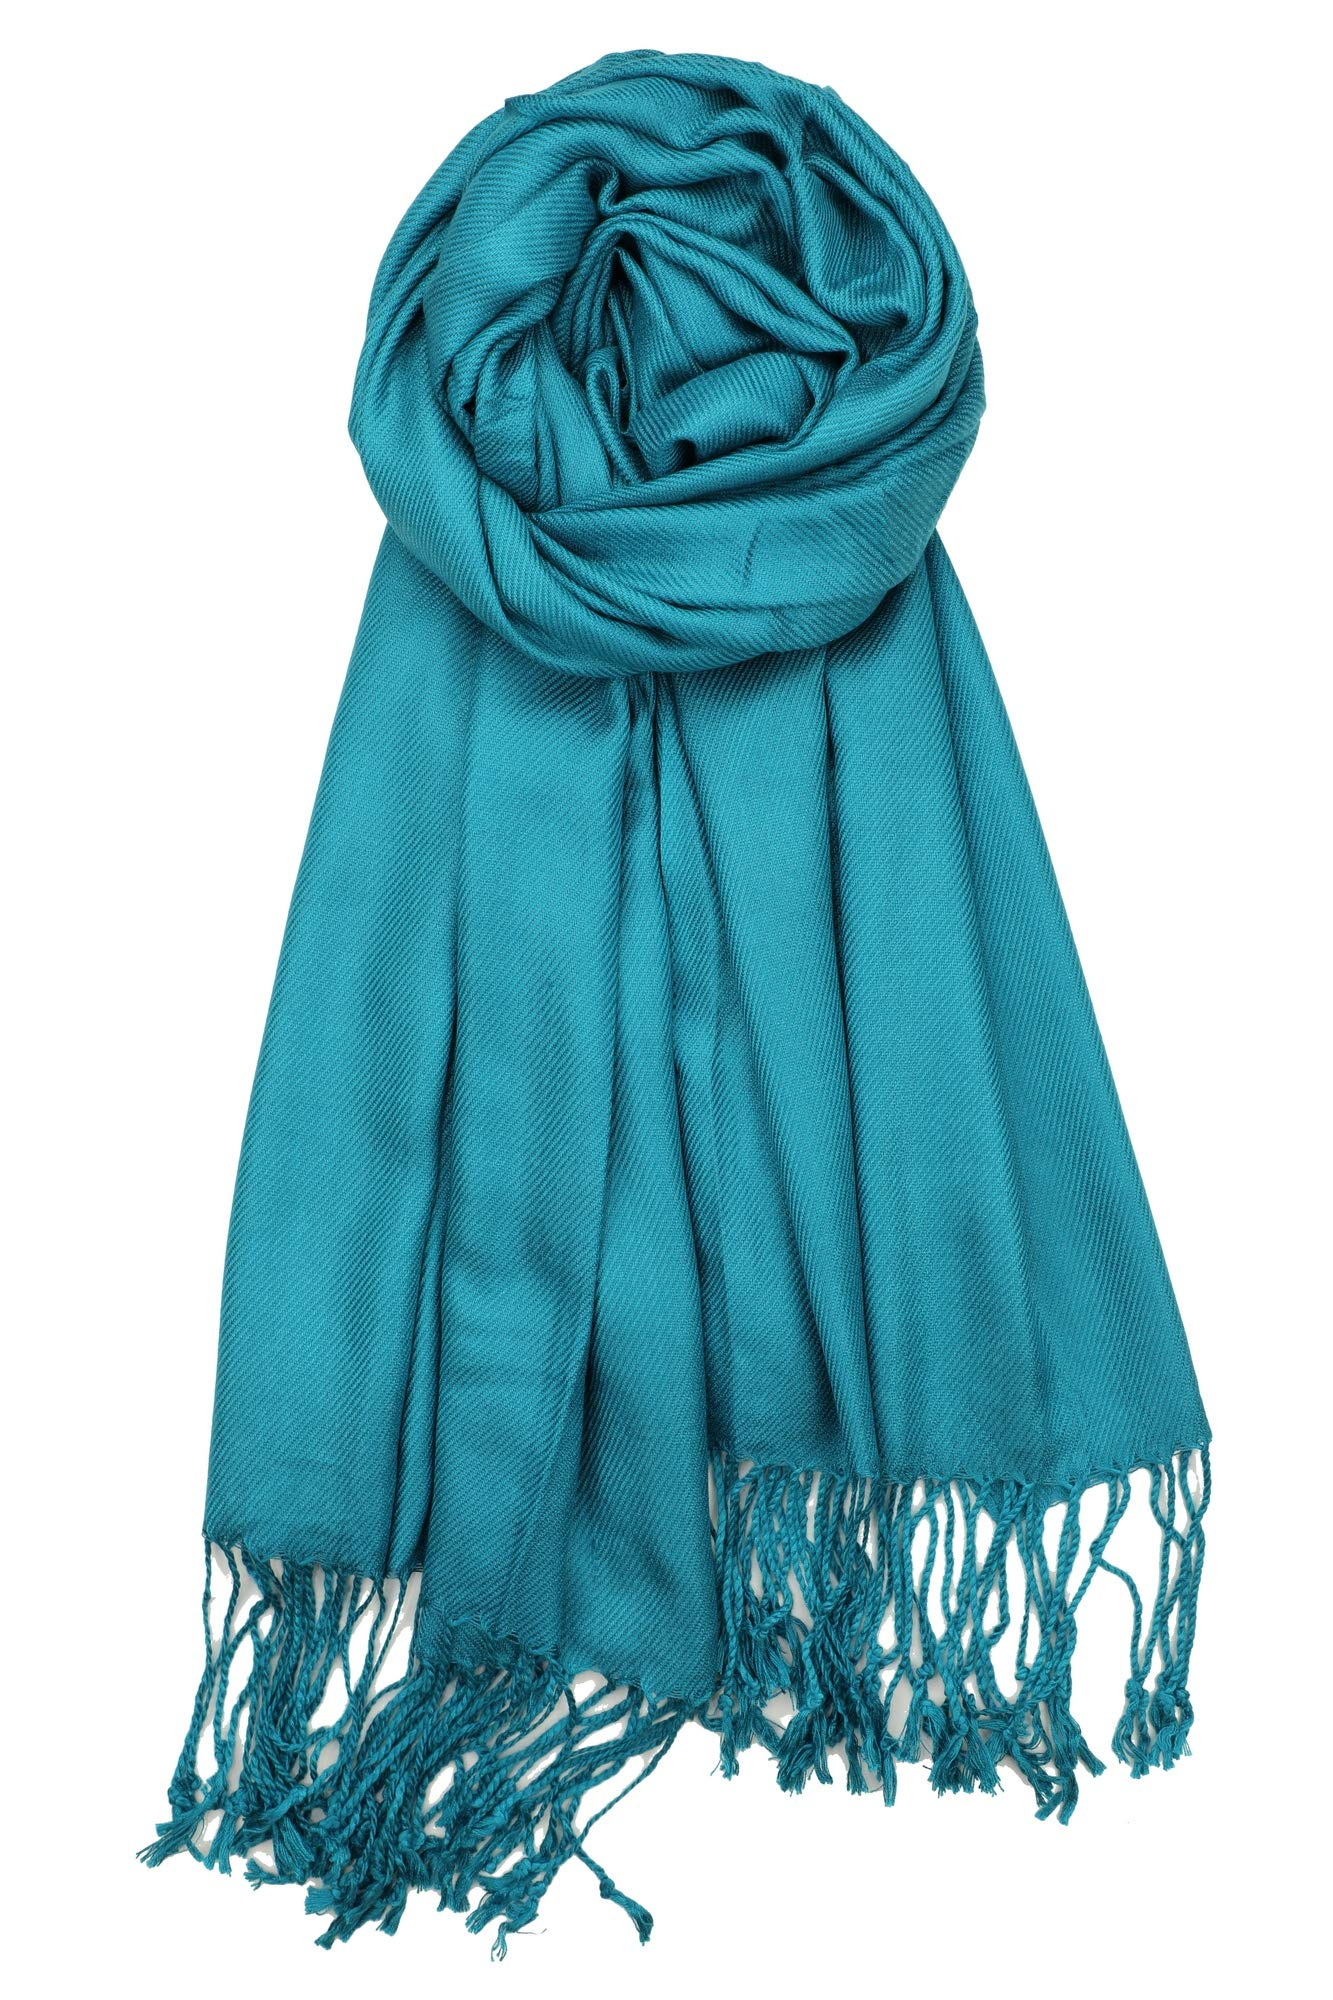 Achillea Soft Silky Solid Pashmina Shawl Wrap Scarf for Wedding Bridesmaid Evening Dress … (Teal)